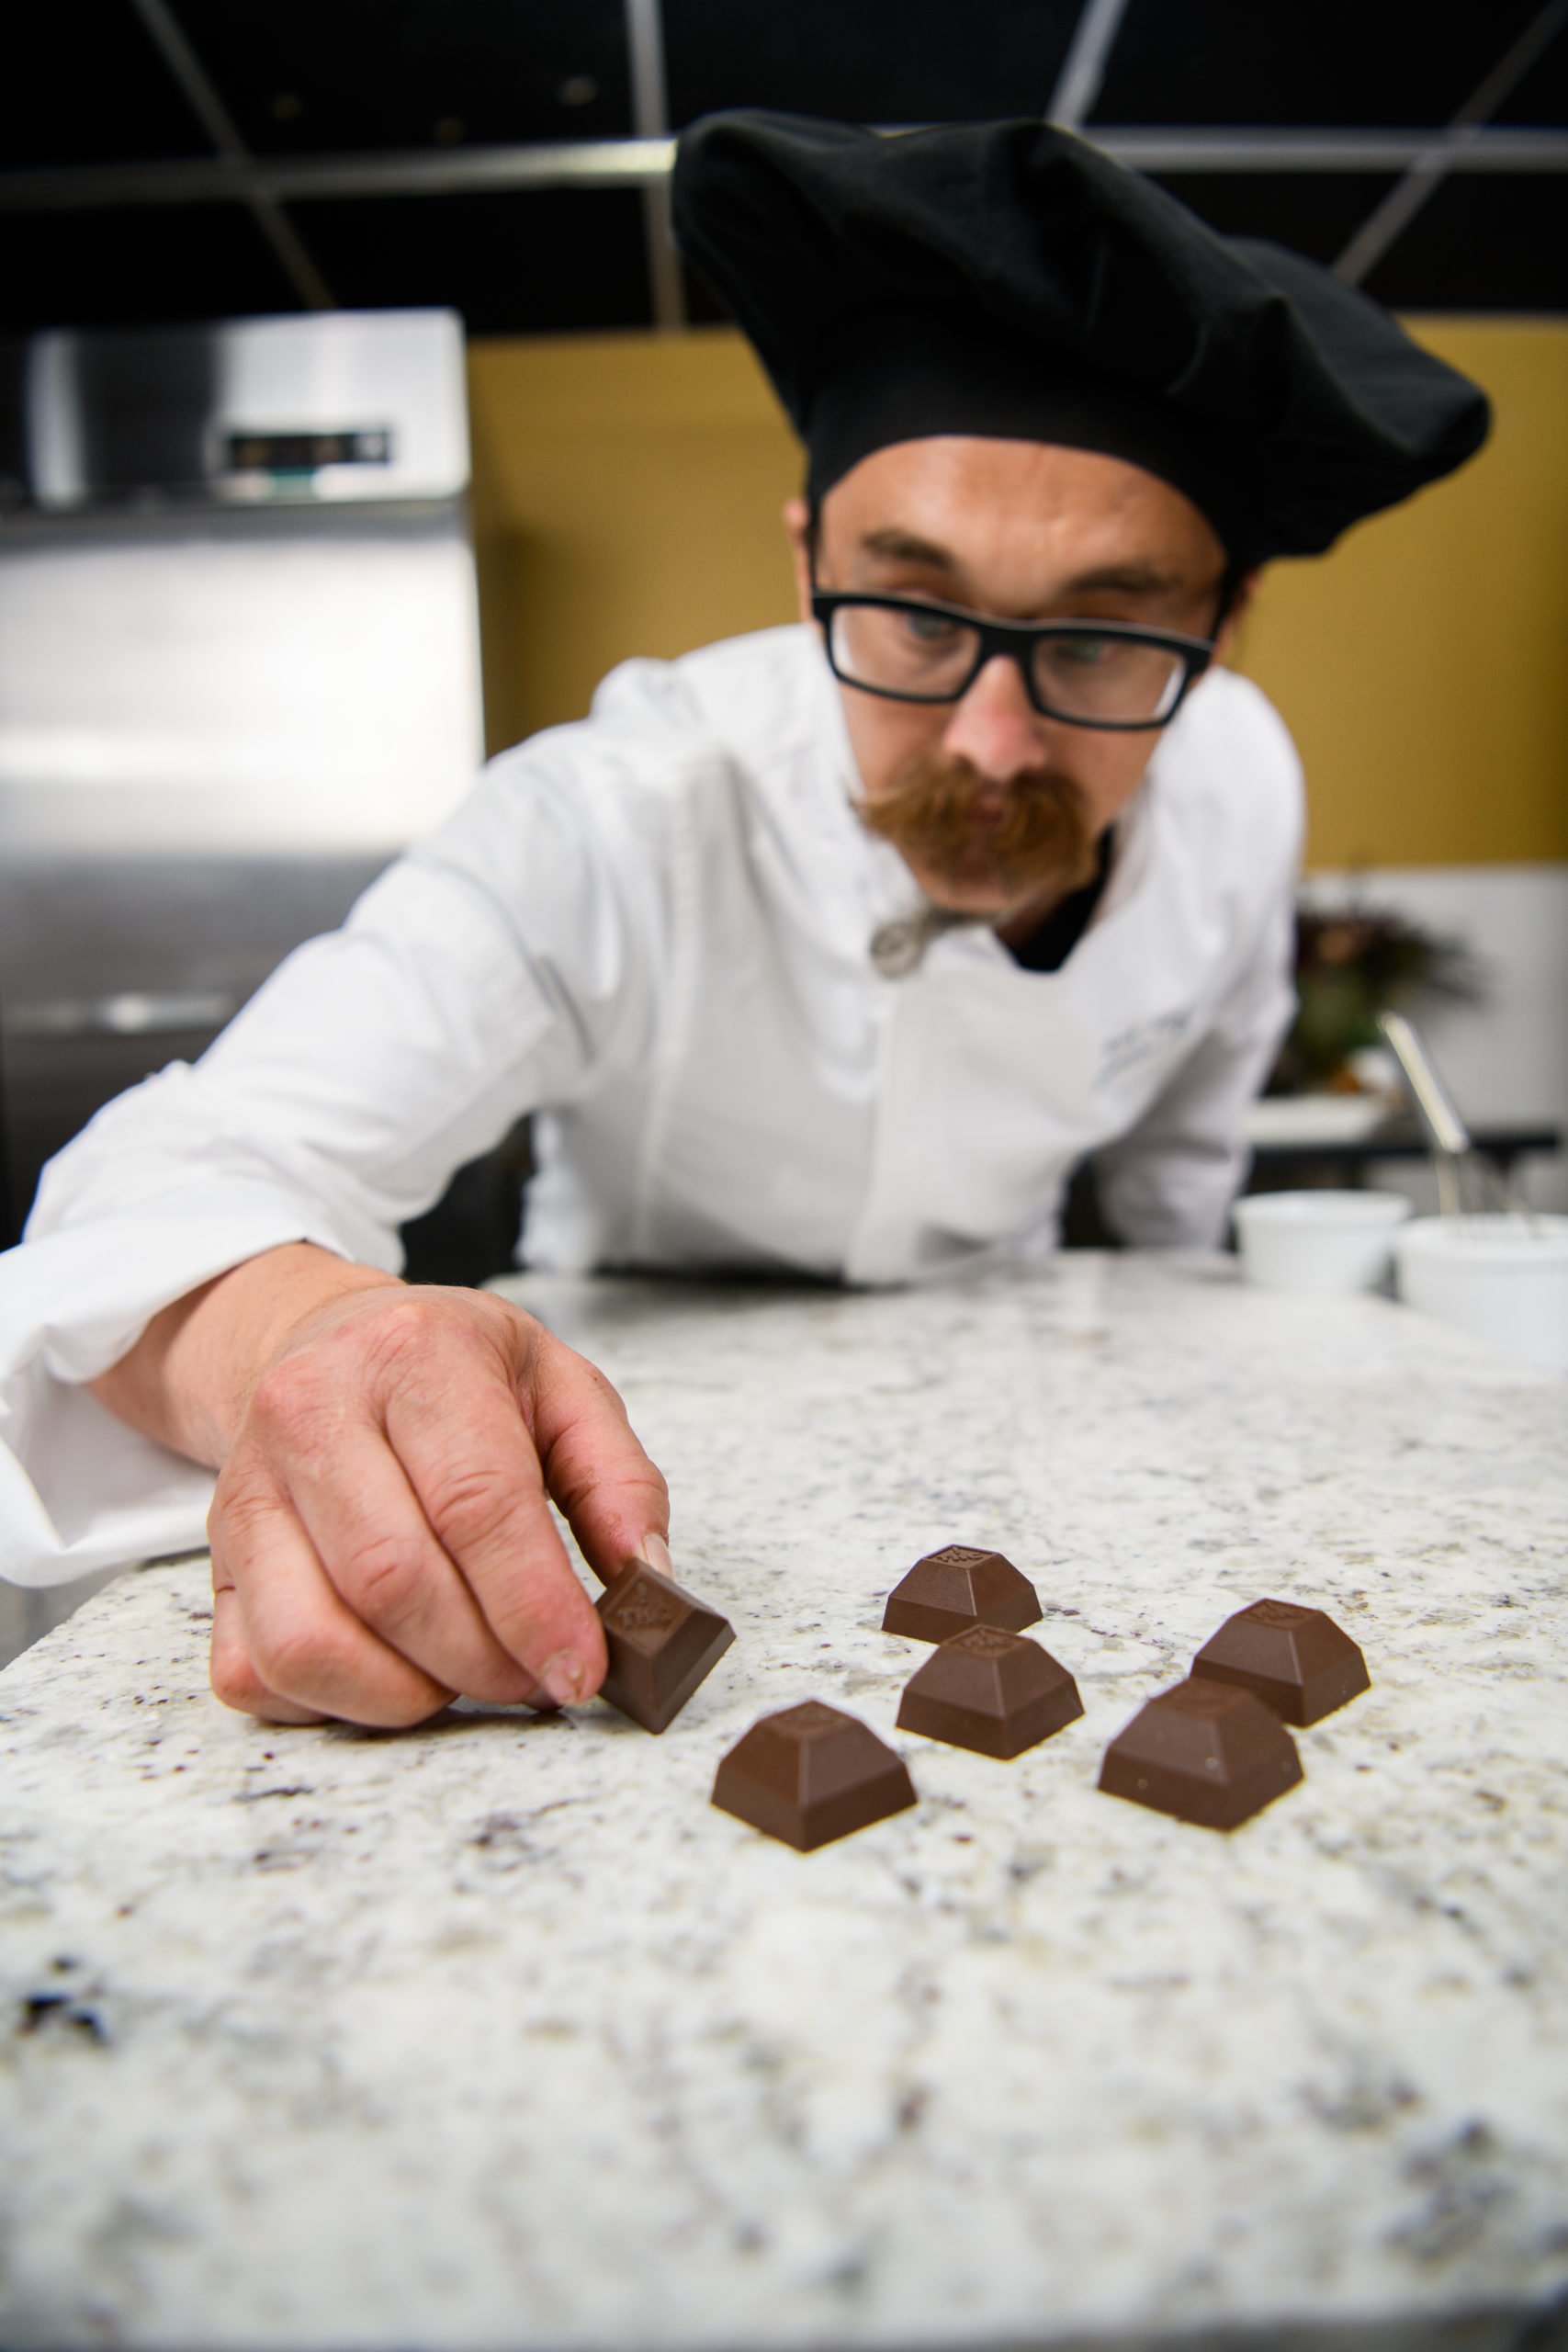 Josh Fink, Co-Founder and Executive Chef at Medically Correct, examines Nove luxury cannabis-infused chocolates.